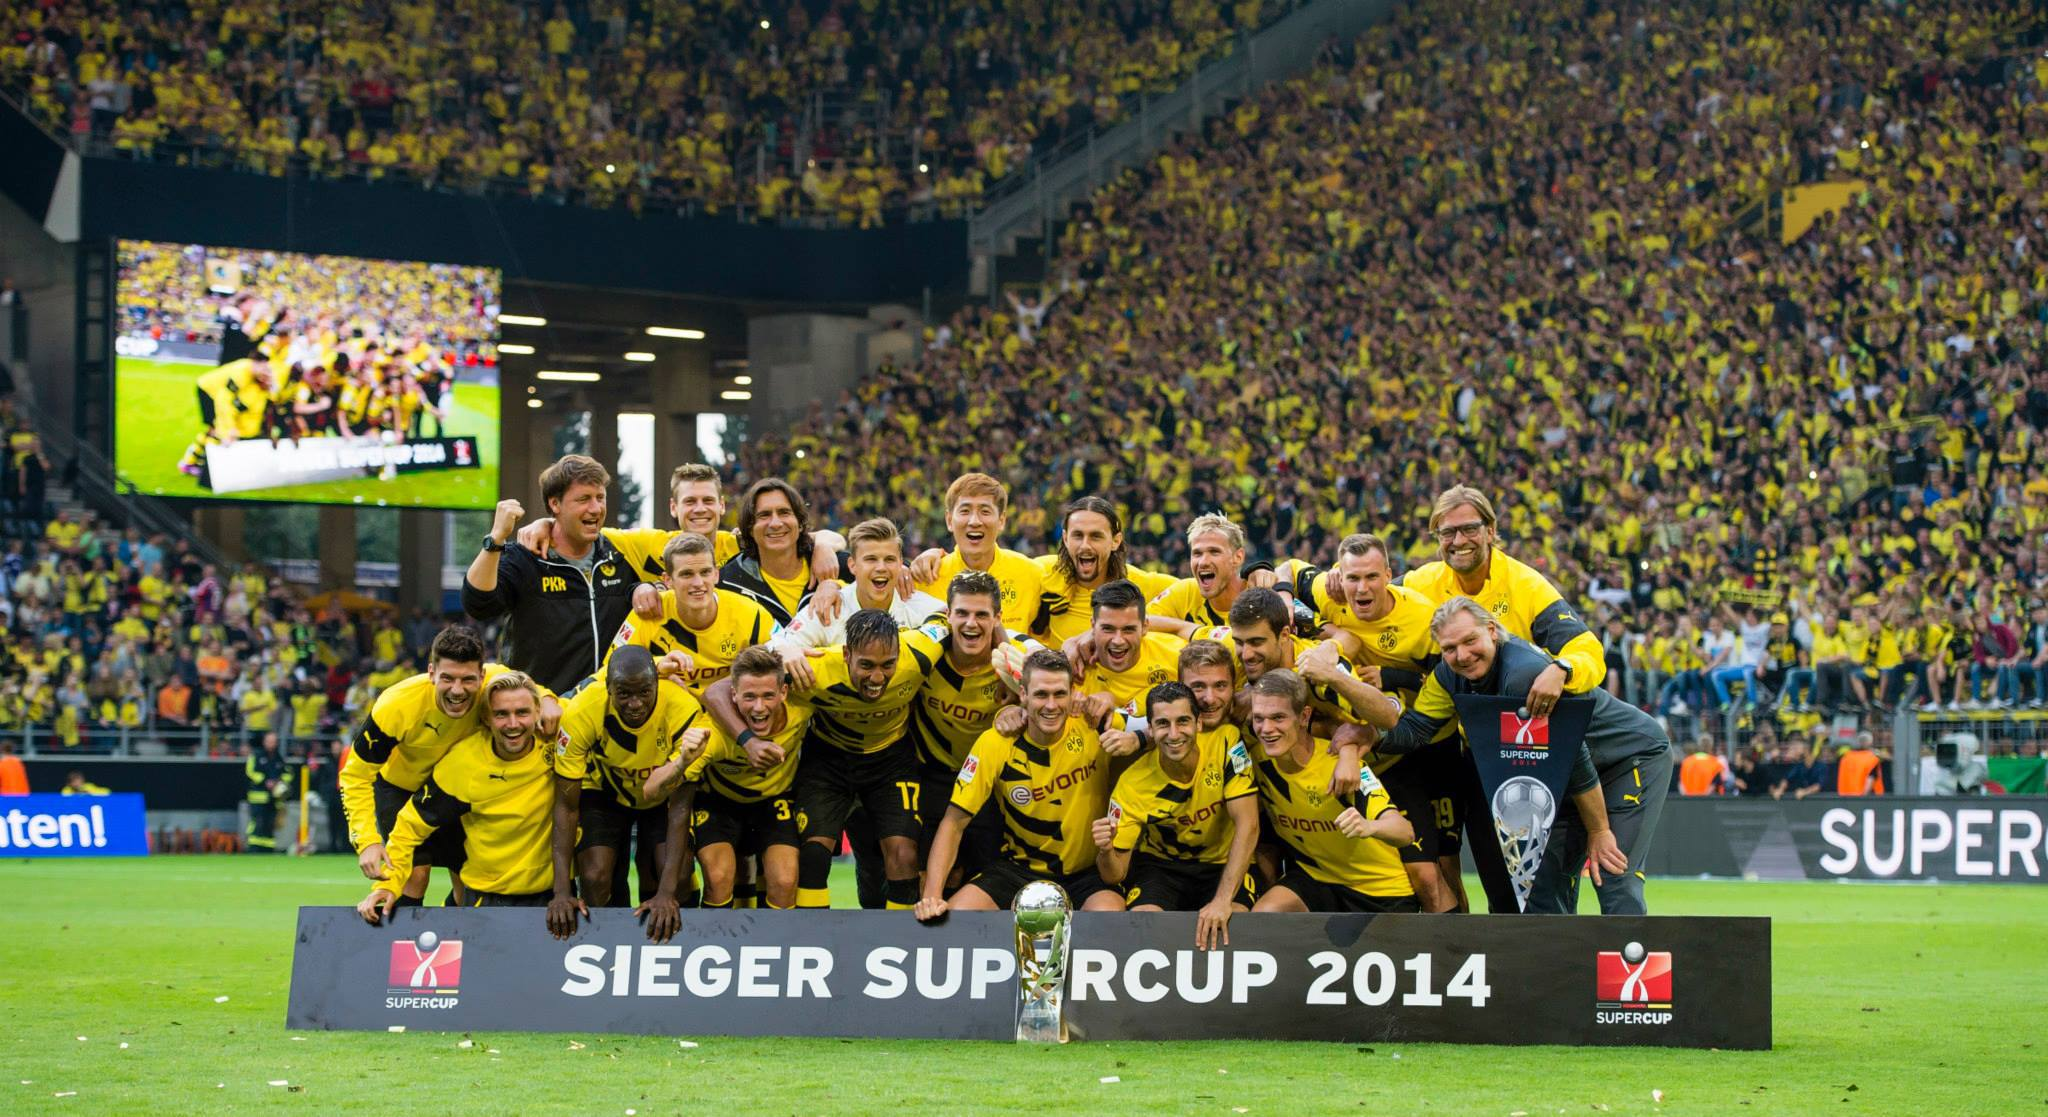 Borussia Dortmund Wallpaper For Laptop